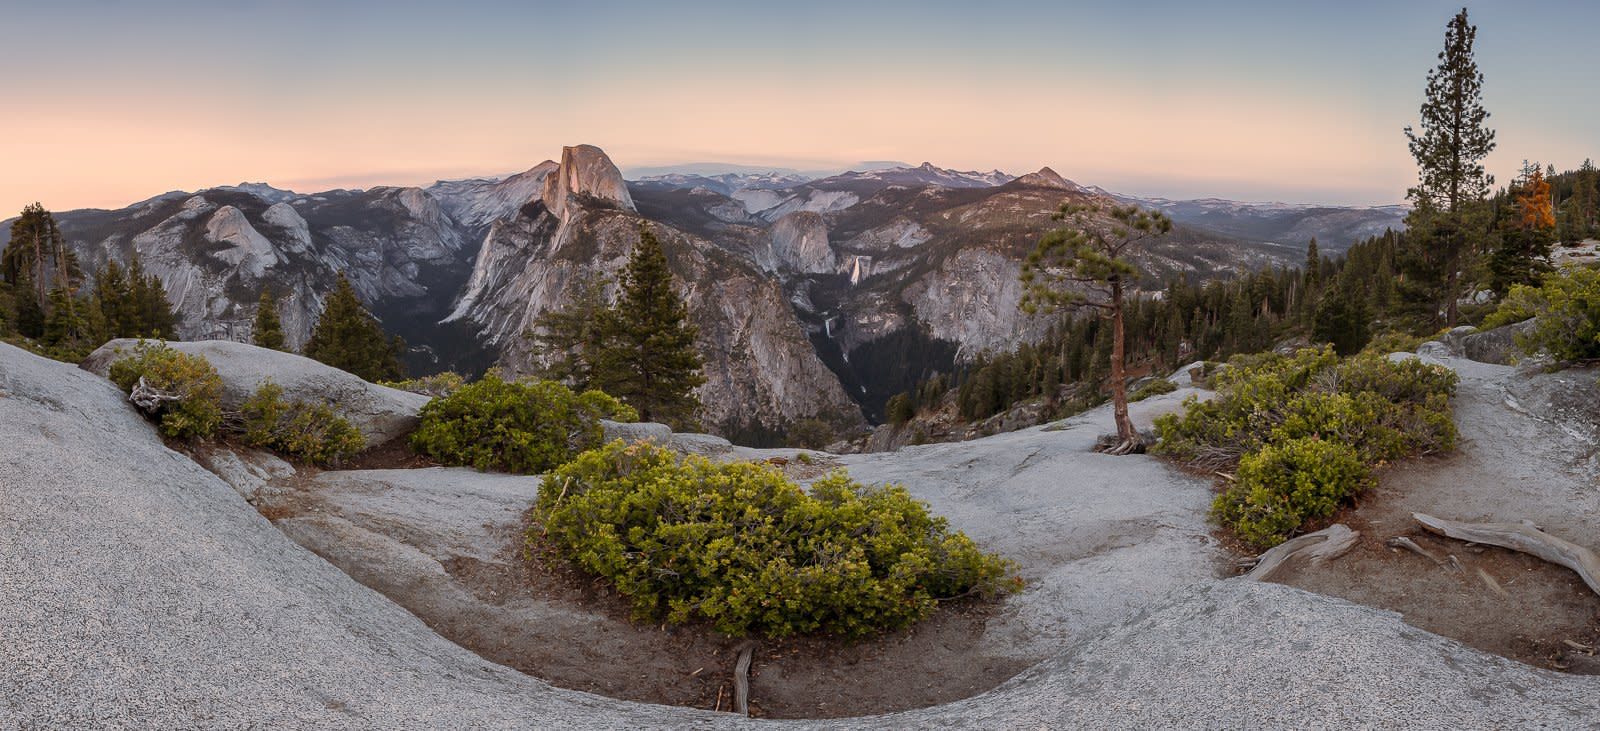 'Glacier Point' no Yosemite - EUA, Califórnia